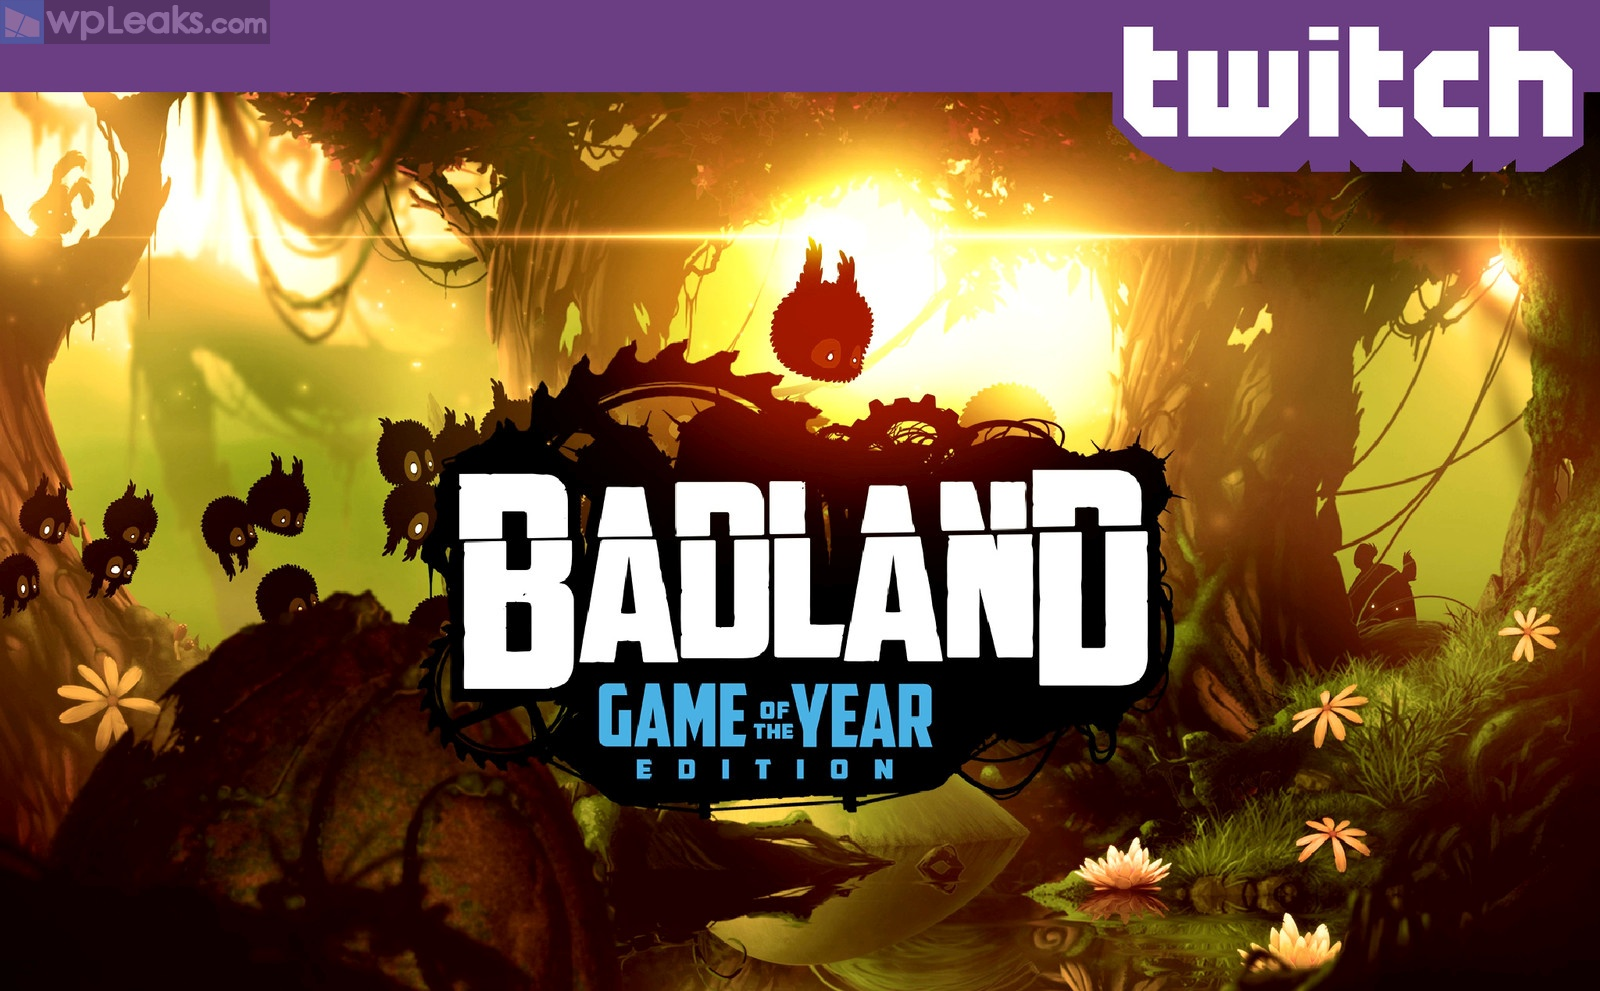 Badland-Game-of-the-Year-Edition-Twitch